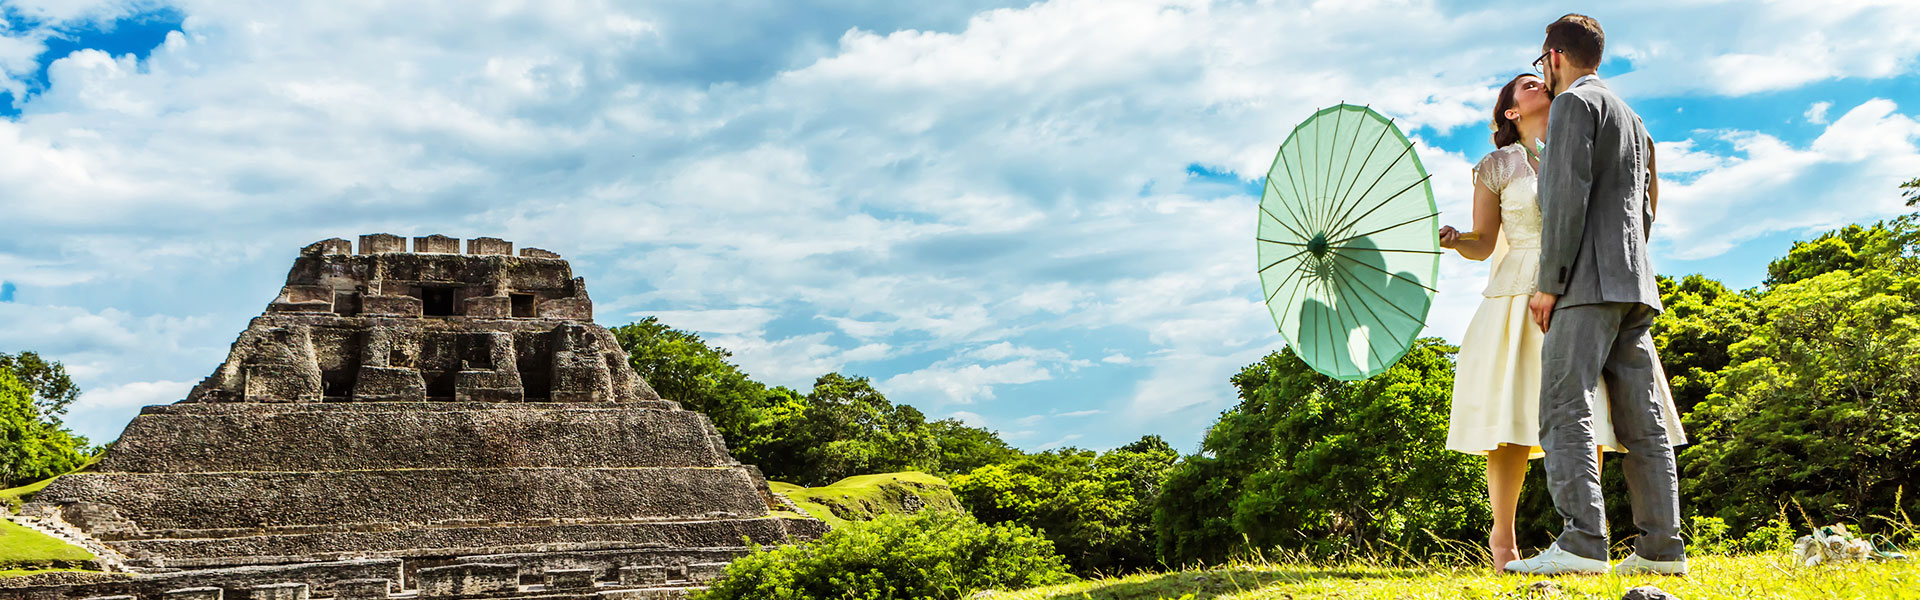 SACRED MAYAN RUINS WEDDINGS